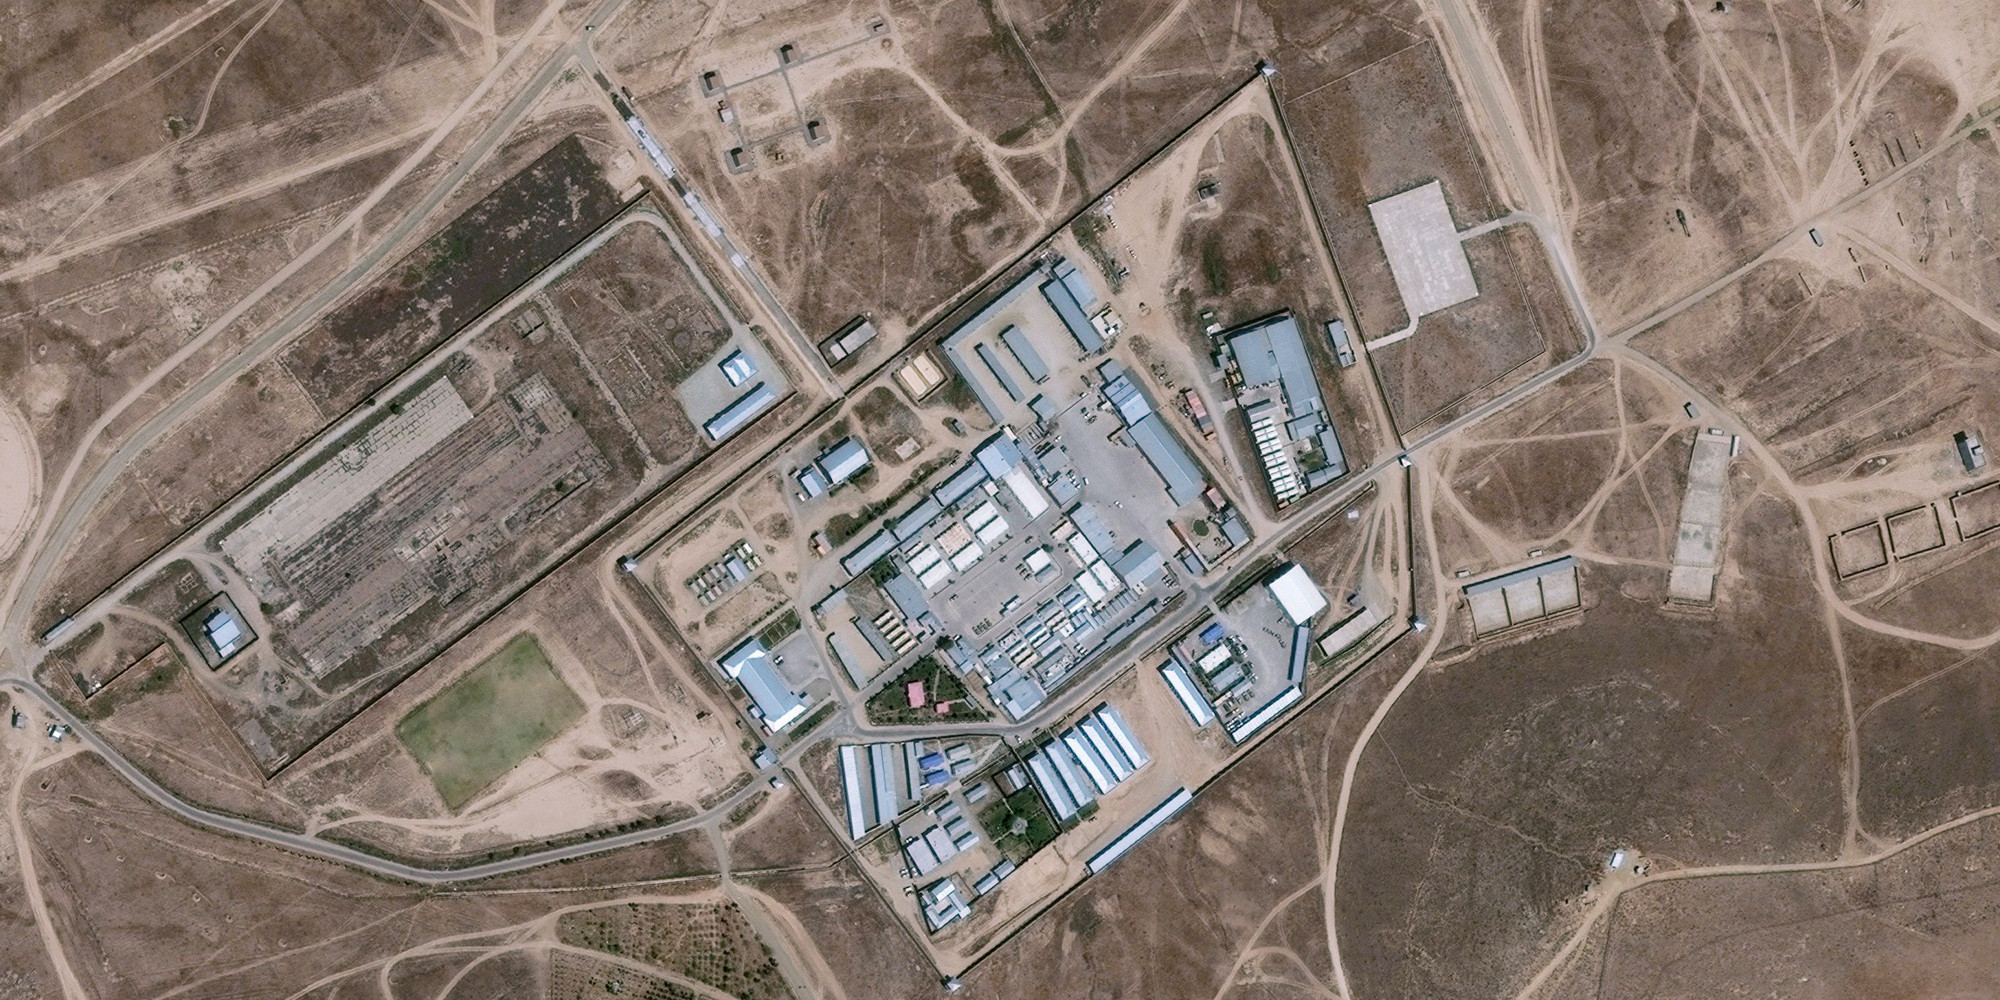 Patent An Idea >> How We Outsourced CIA Torture And Why It Matters